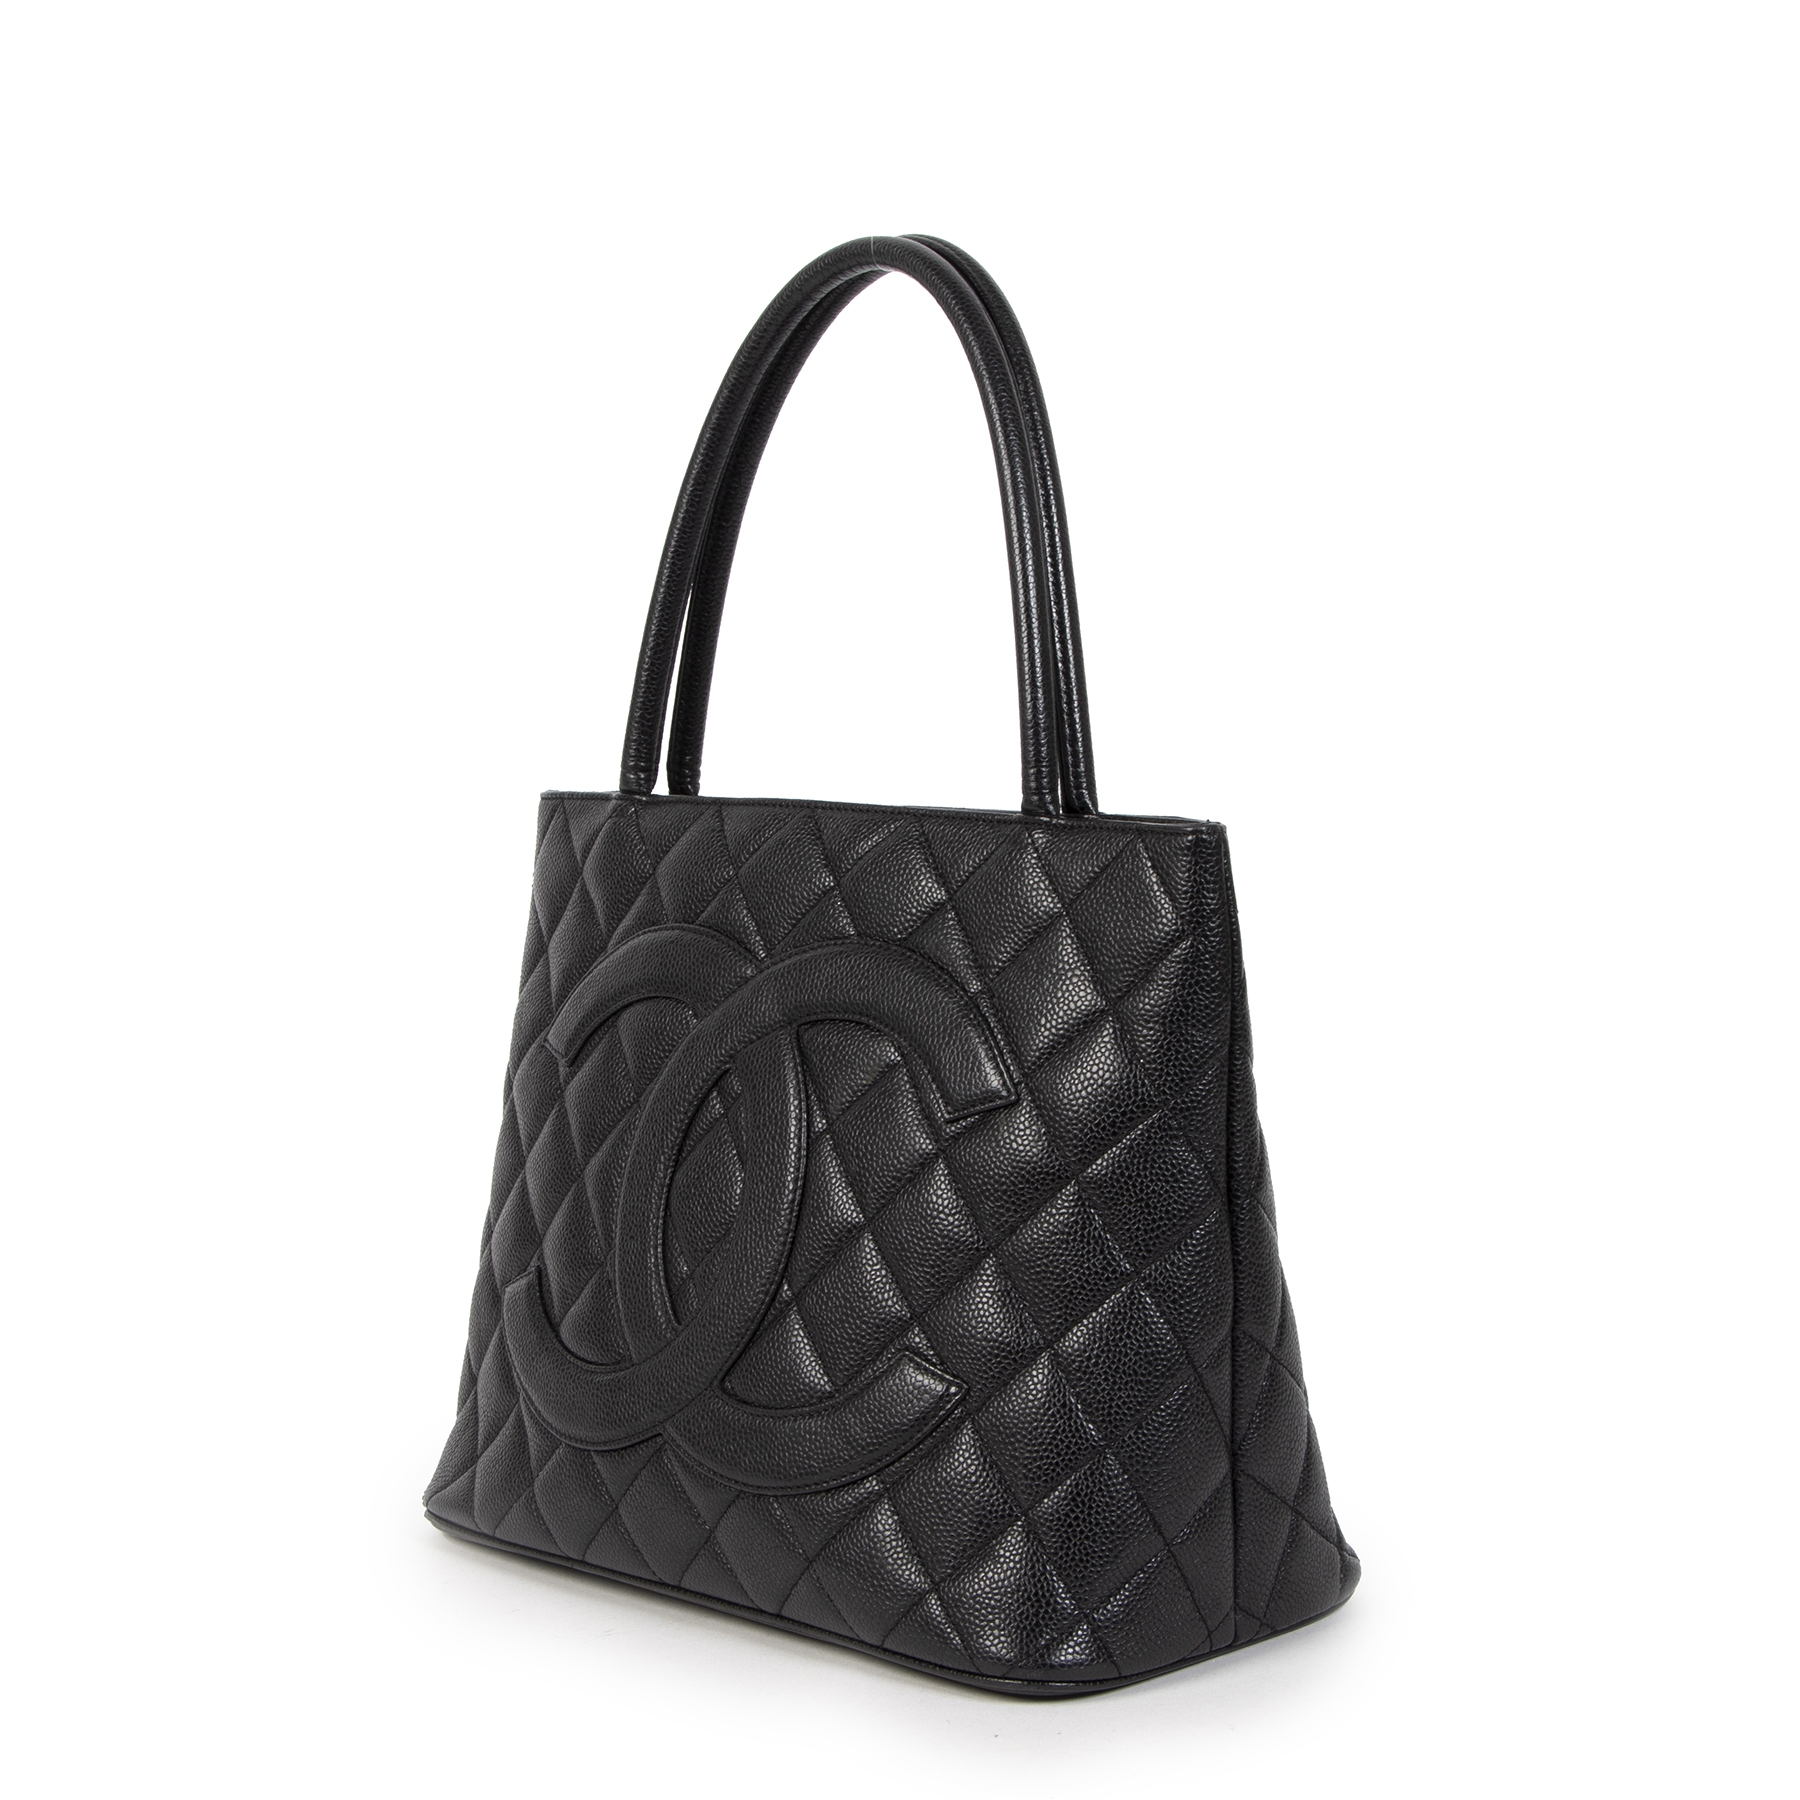 Buy Authentic Secondhand Chanel Black Caviar Medallion Tote Bag at the right price safe and secure online at LabelLOV webshop Antwerp Belgium